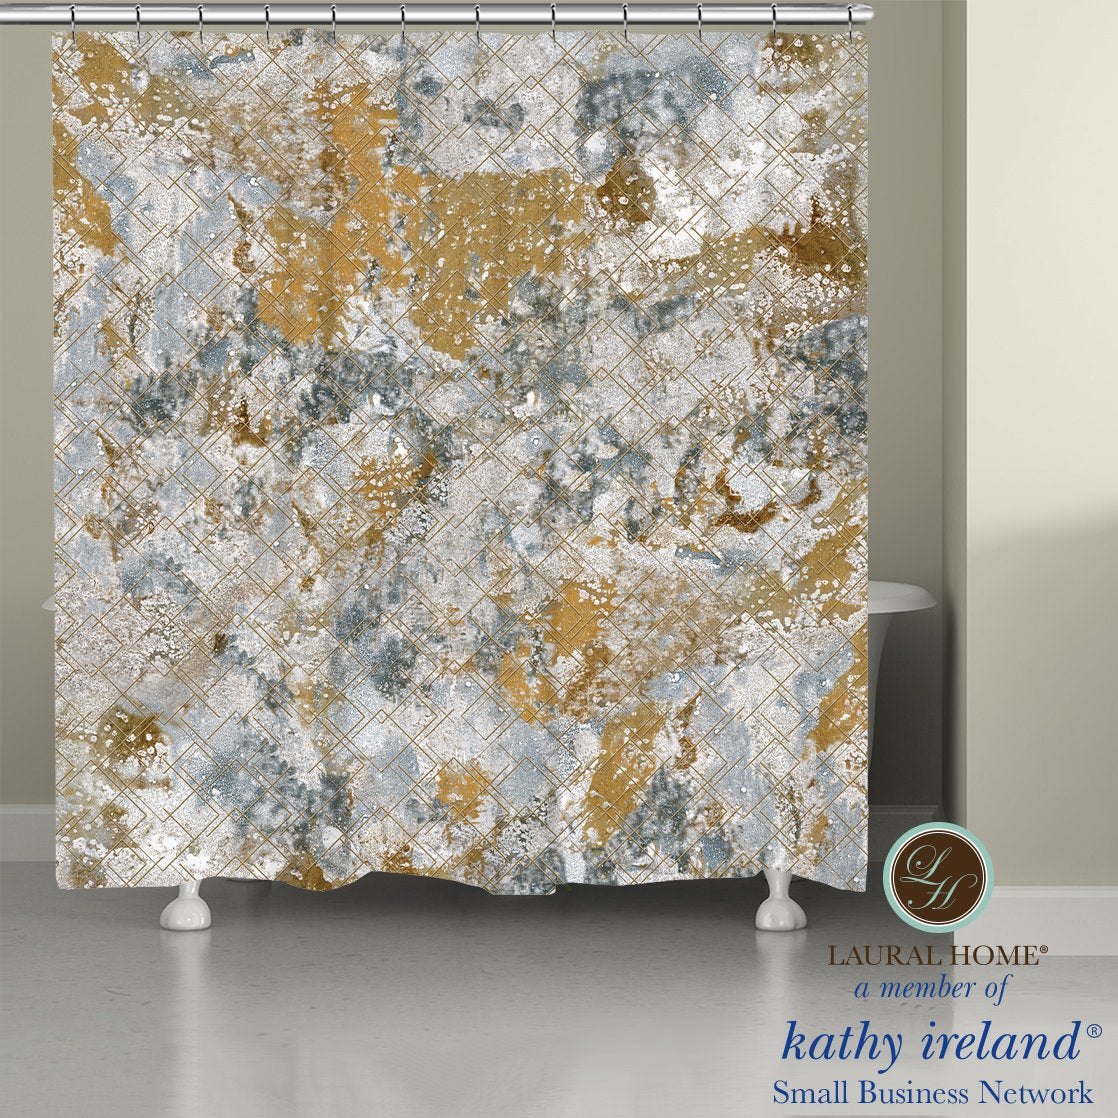 Laural Home kathy ireland®  Small Business Network Member Stone Wall Shower Curtain